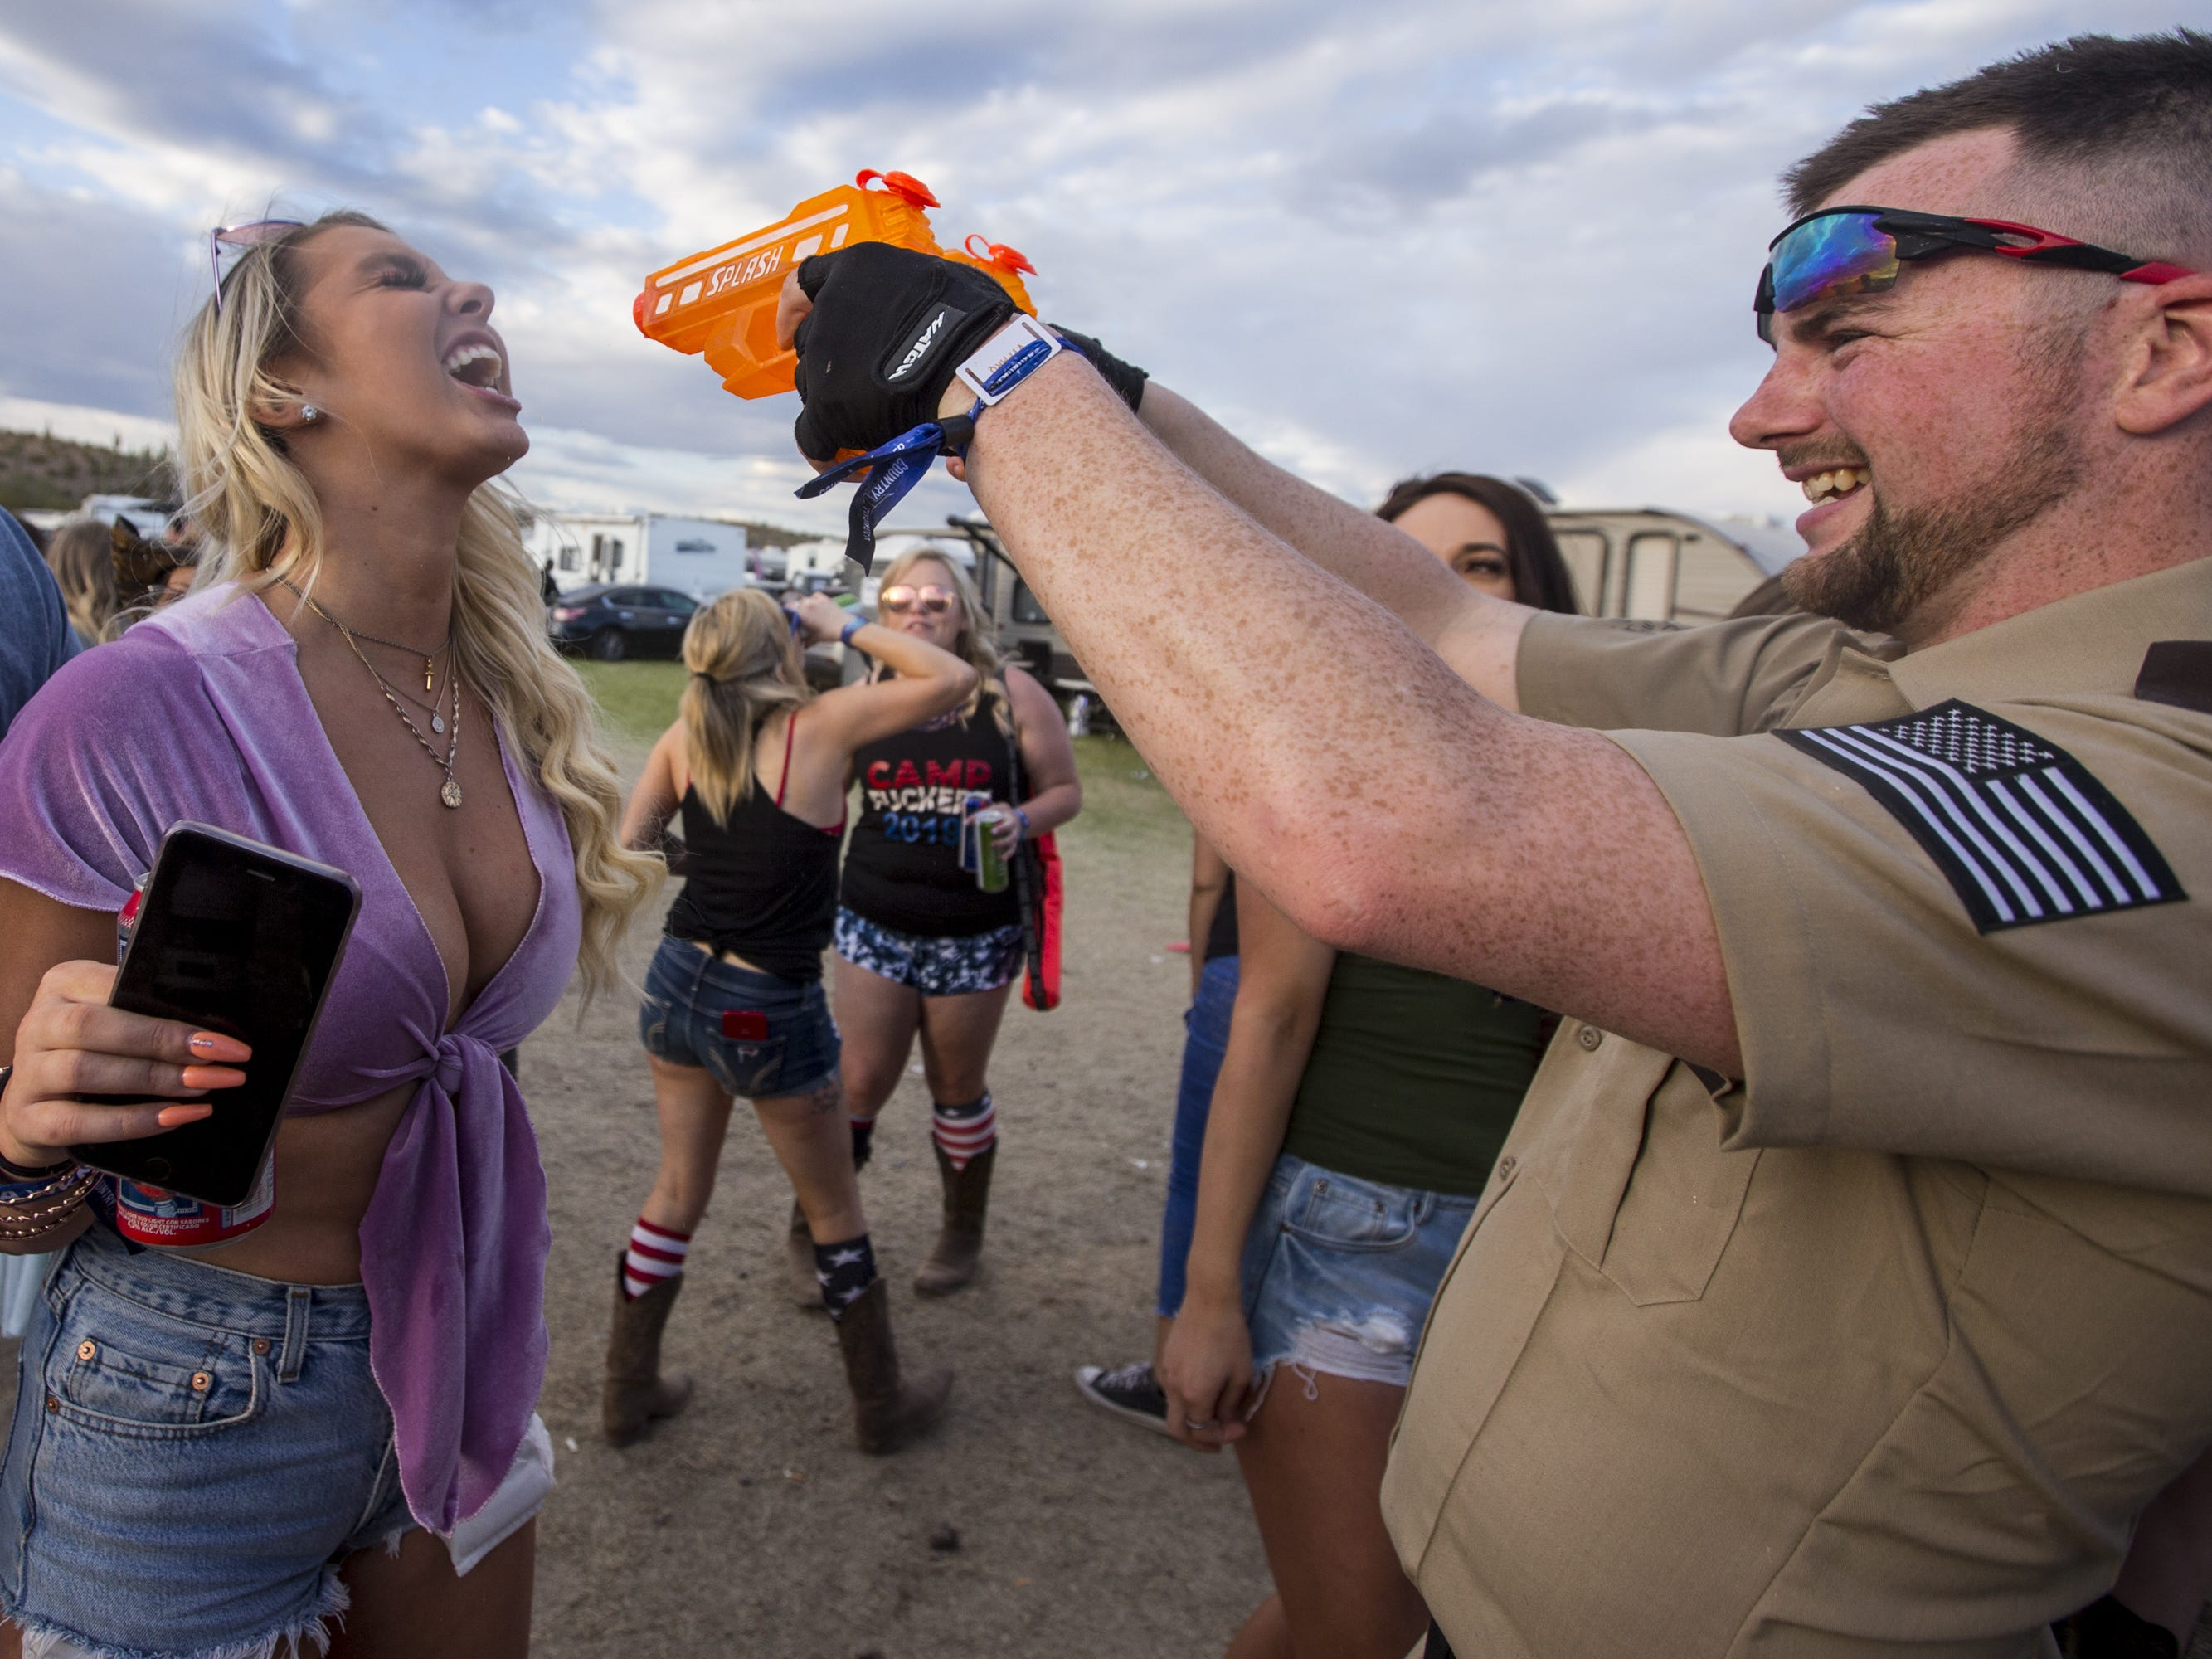 Luke Brown shoots liquor into Marlaina Hagen's mouth at the Crazy Coyote campground on Friday, April 12, 2019, during Day 2 of Country Thunder Arizona in Florence, Ariz.